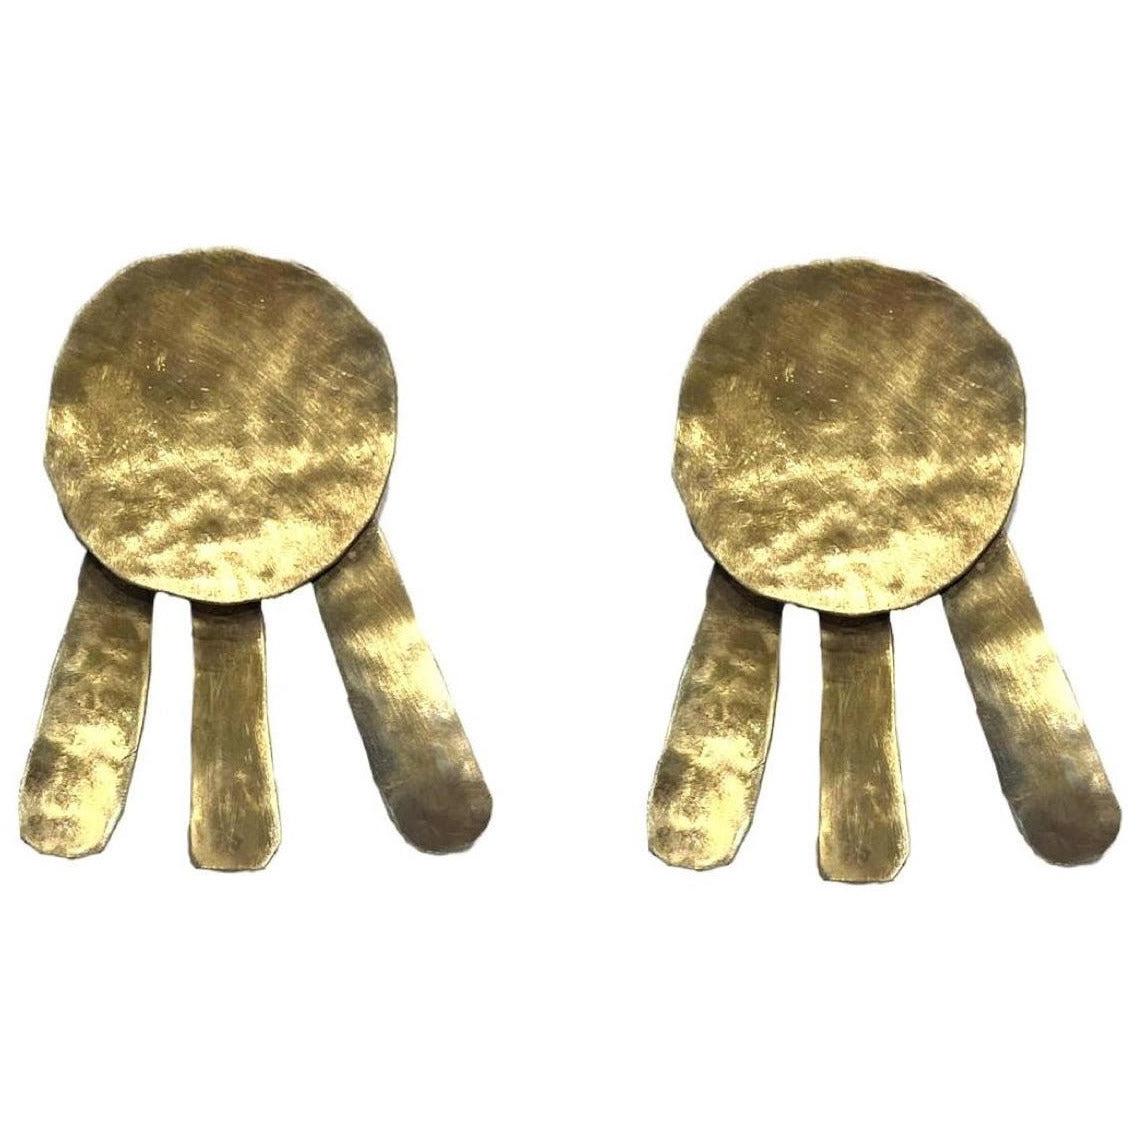 LARGE Geometric Earrings Disk 24K gold plating over 925 Recycled Silver, Made to order, 10 days lead time - natoorio